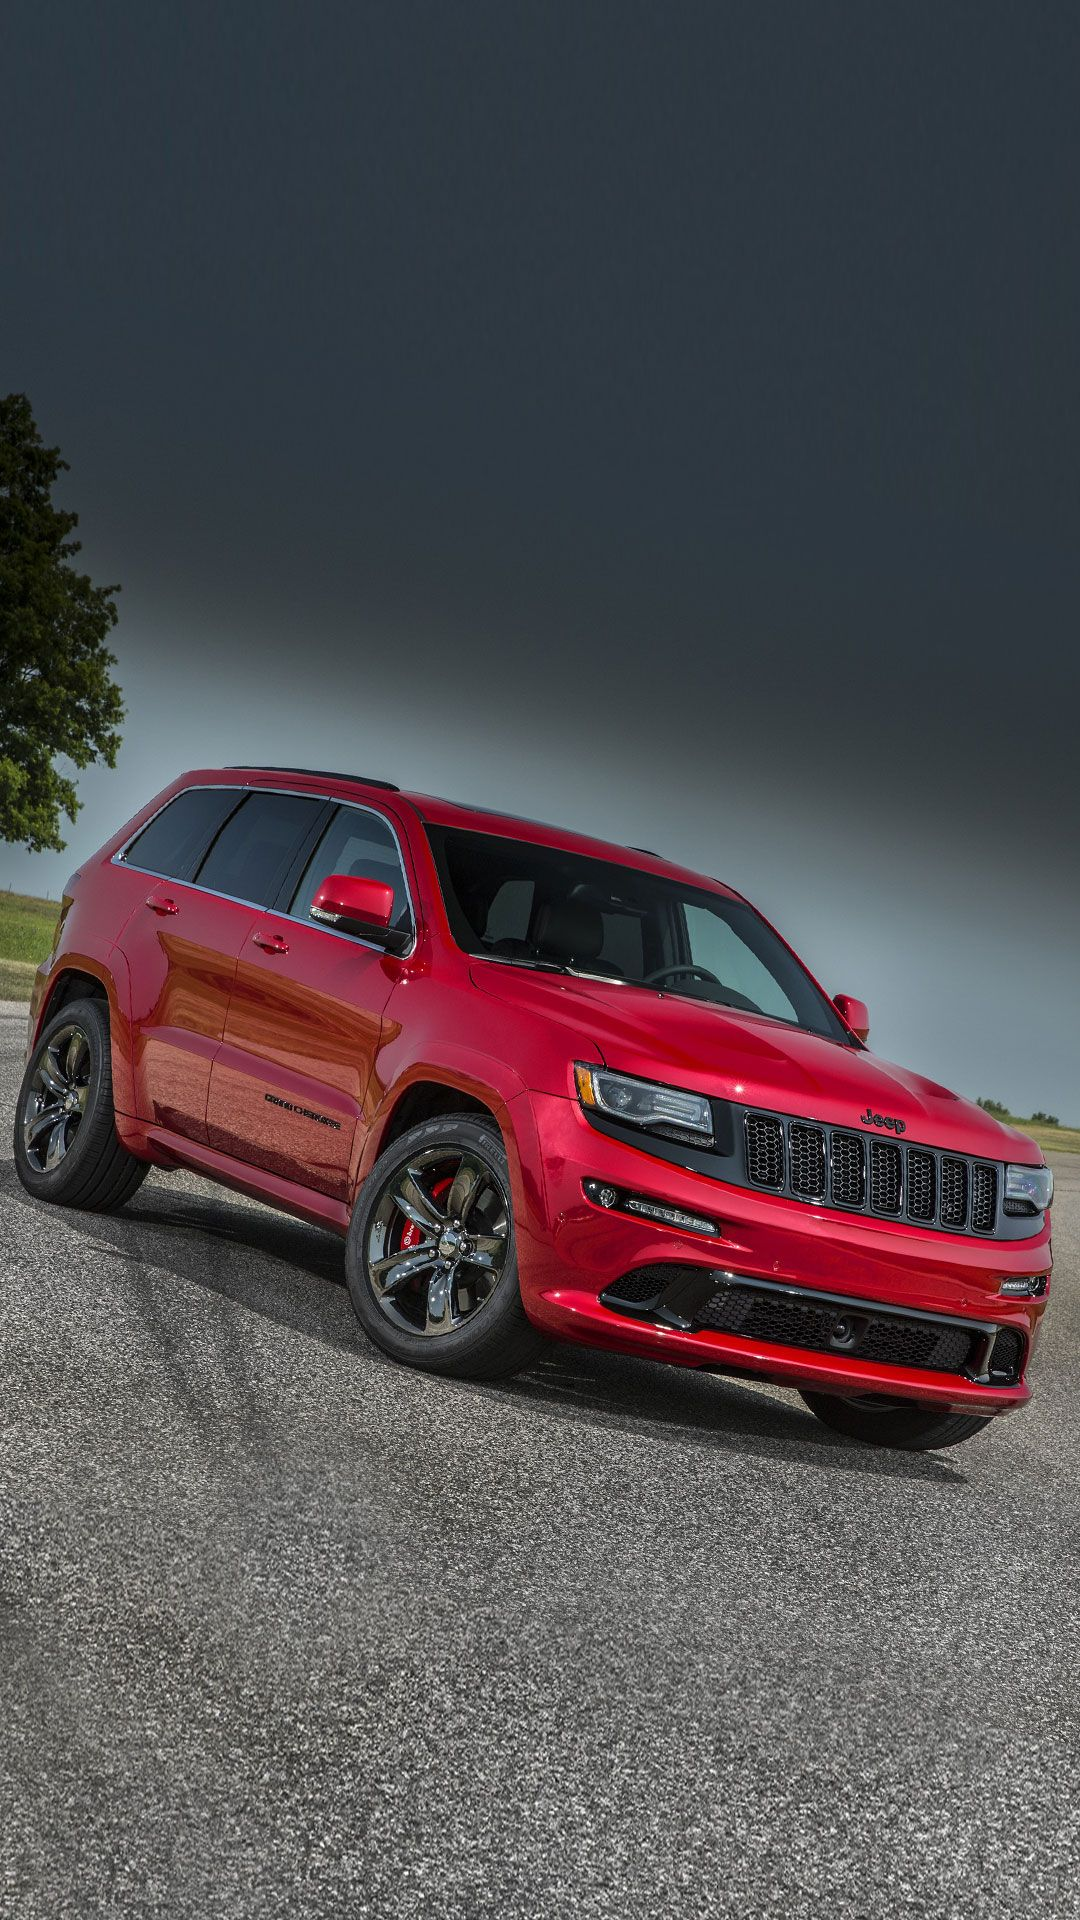 2017 Jeep Grand Cherokee Wallpaper For iPhone 6 Jeep